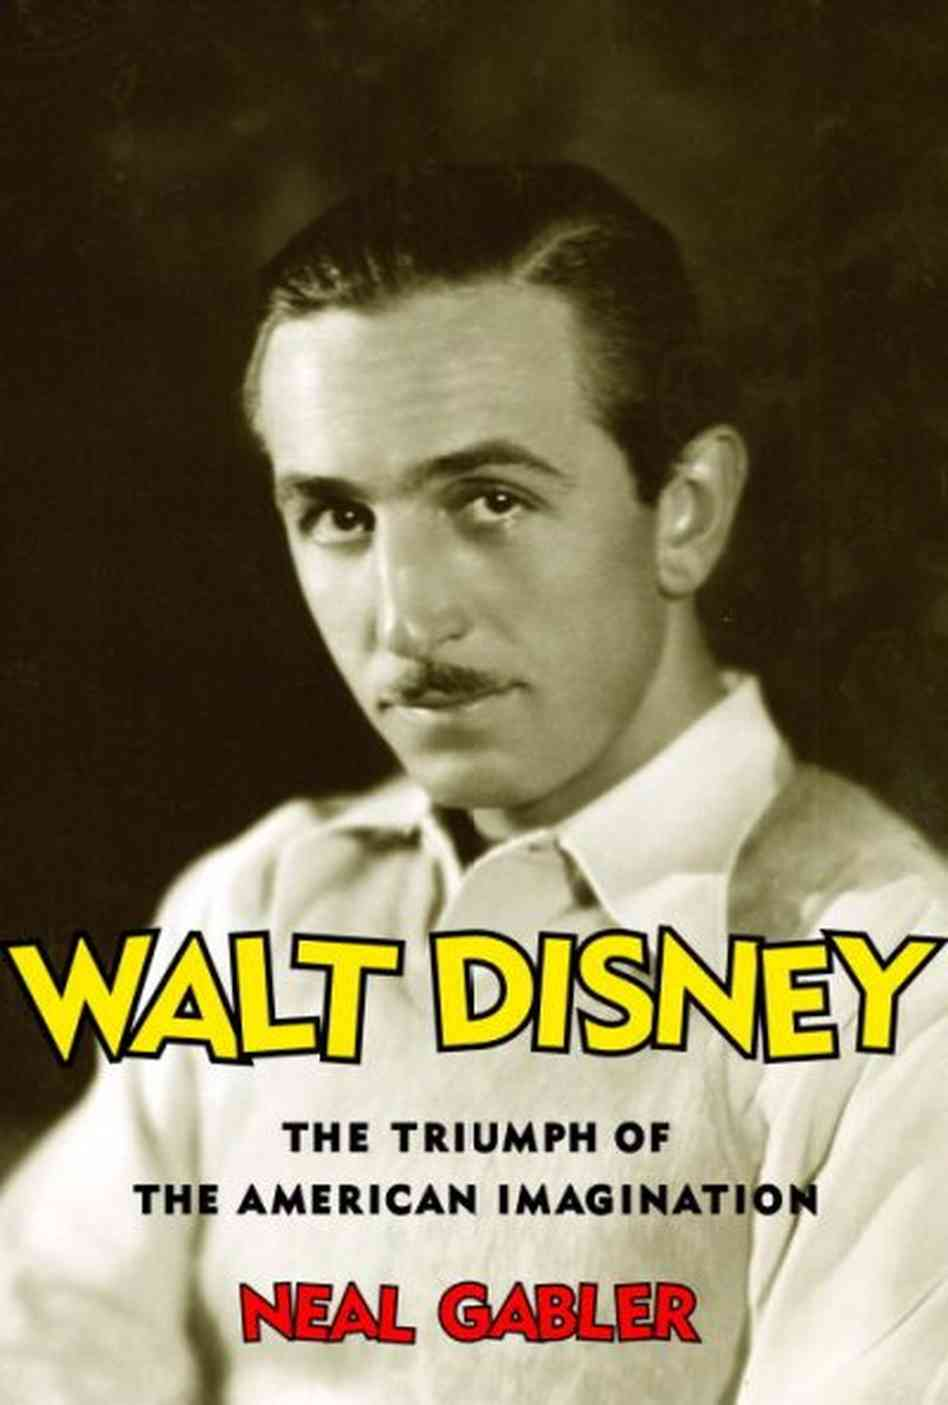 the life of walt disney film studies essay Walt disney, a short biography (essay sample) october 25,  and his name is walt disney  december of 1937 when he released the first full length animated film snow white and the seven dwarfs and that was the start of all the disney fairytales.